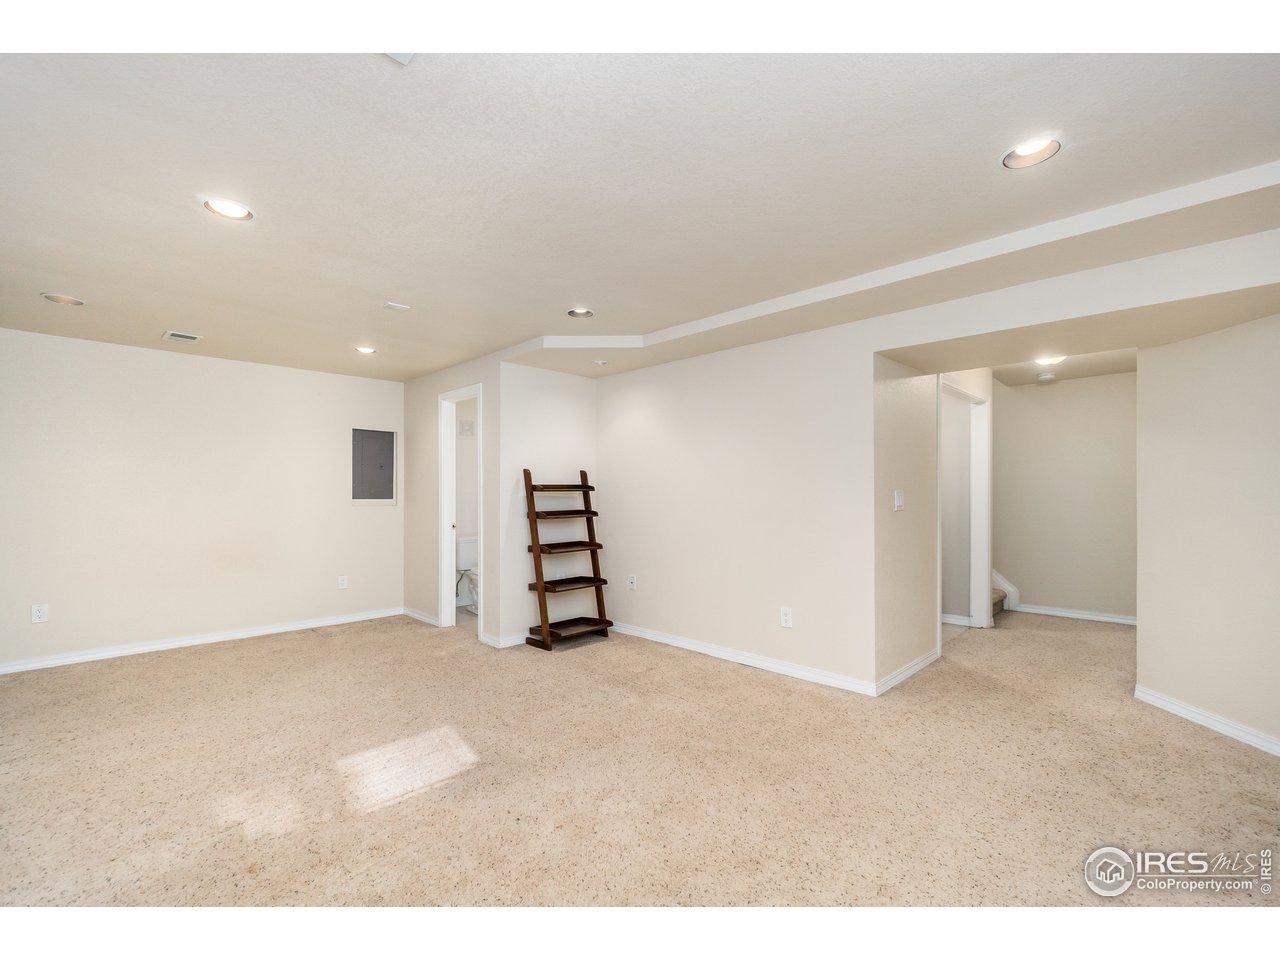 Could be a large bedroom or flex space